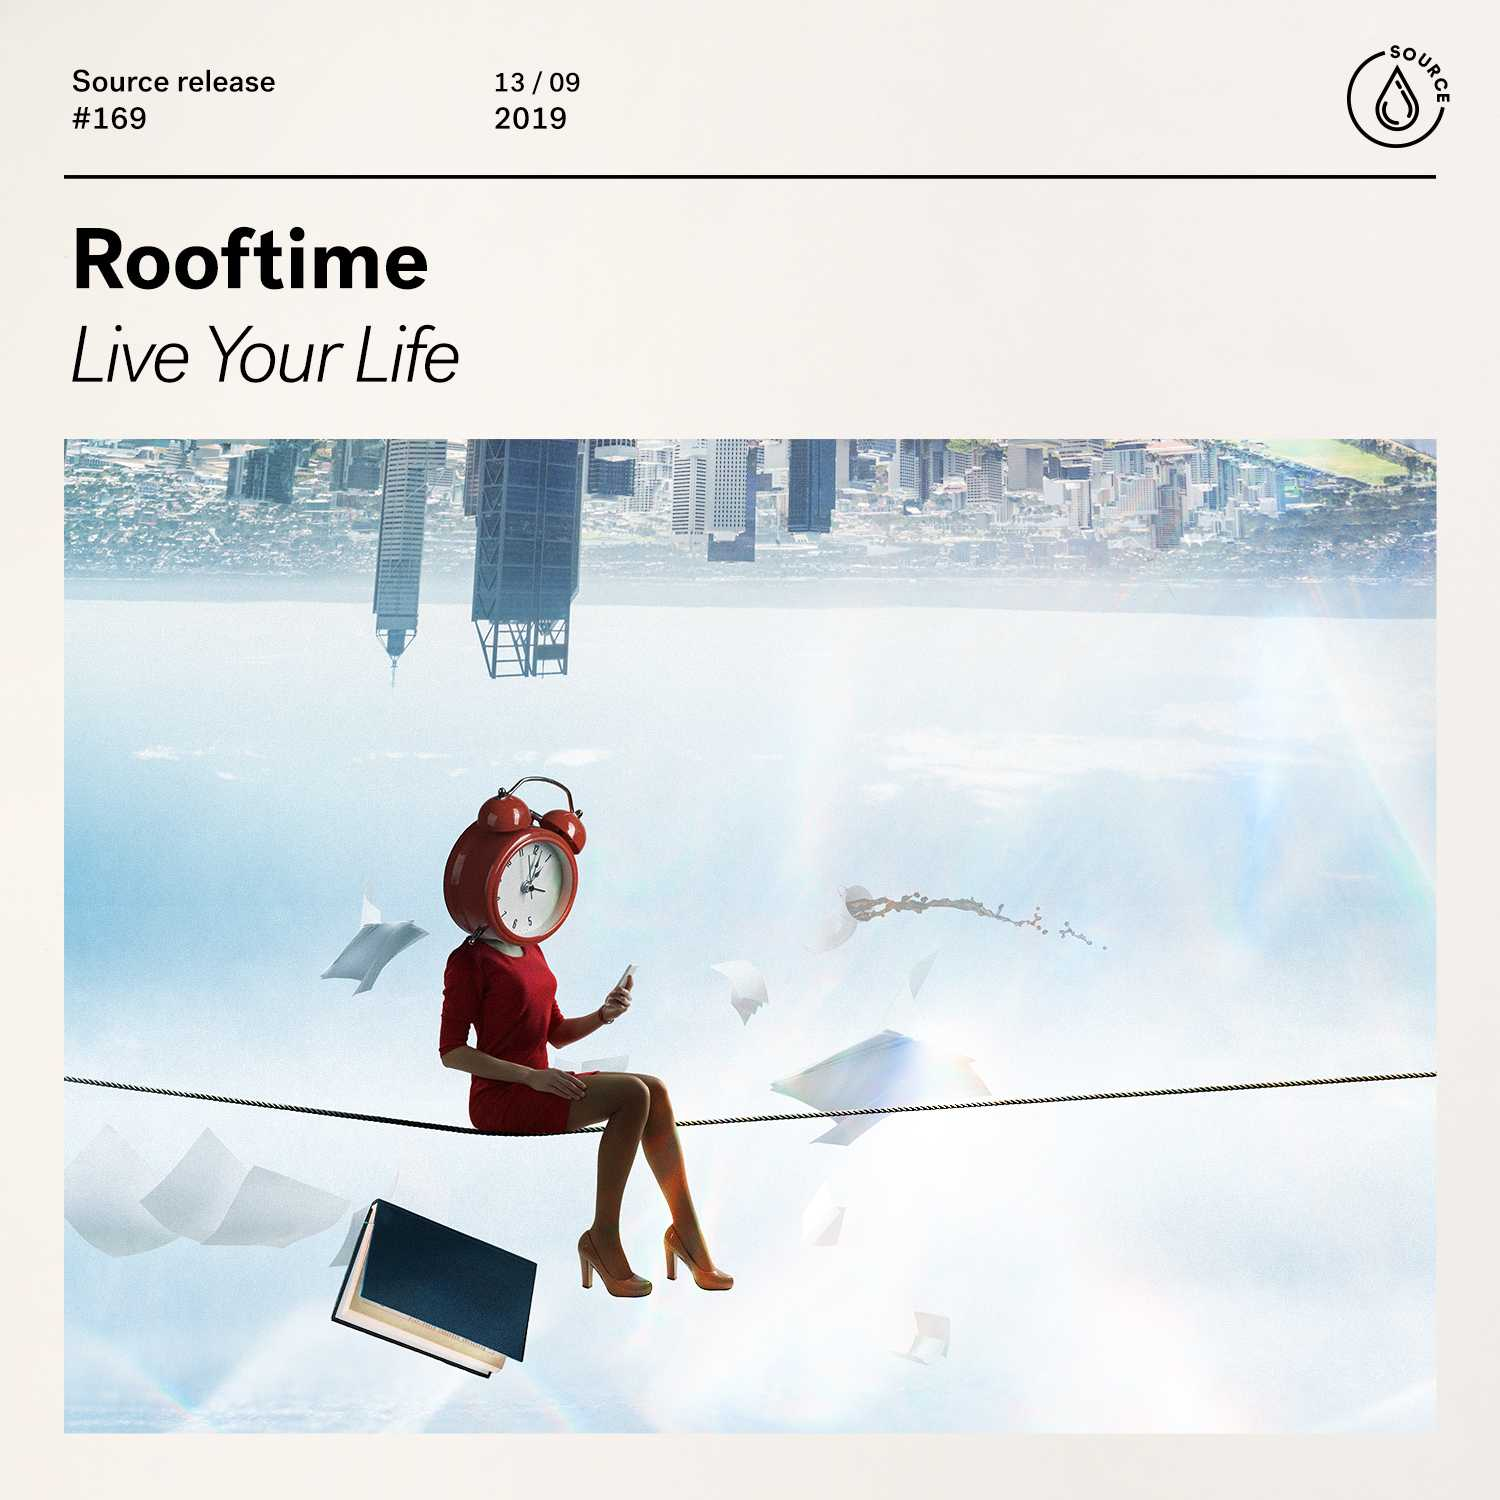 Rooftime Live Your Life